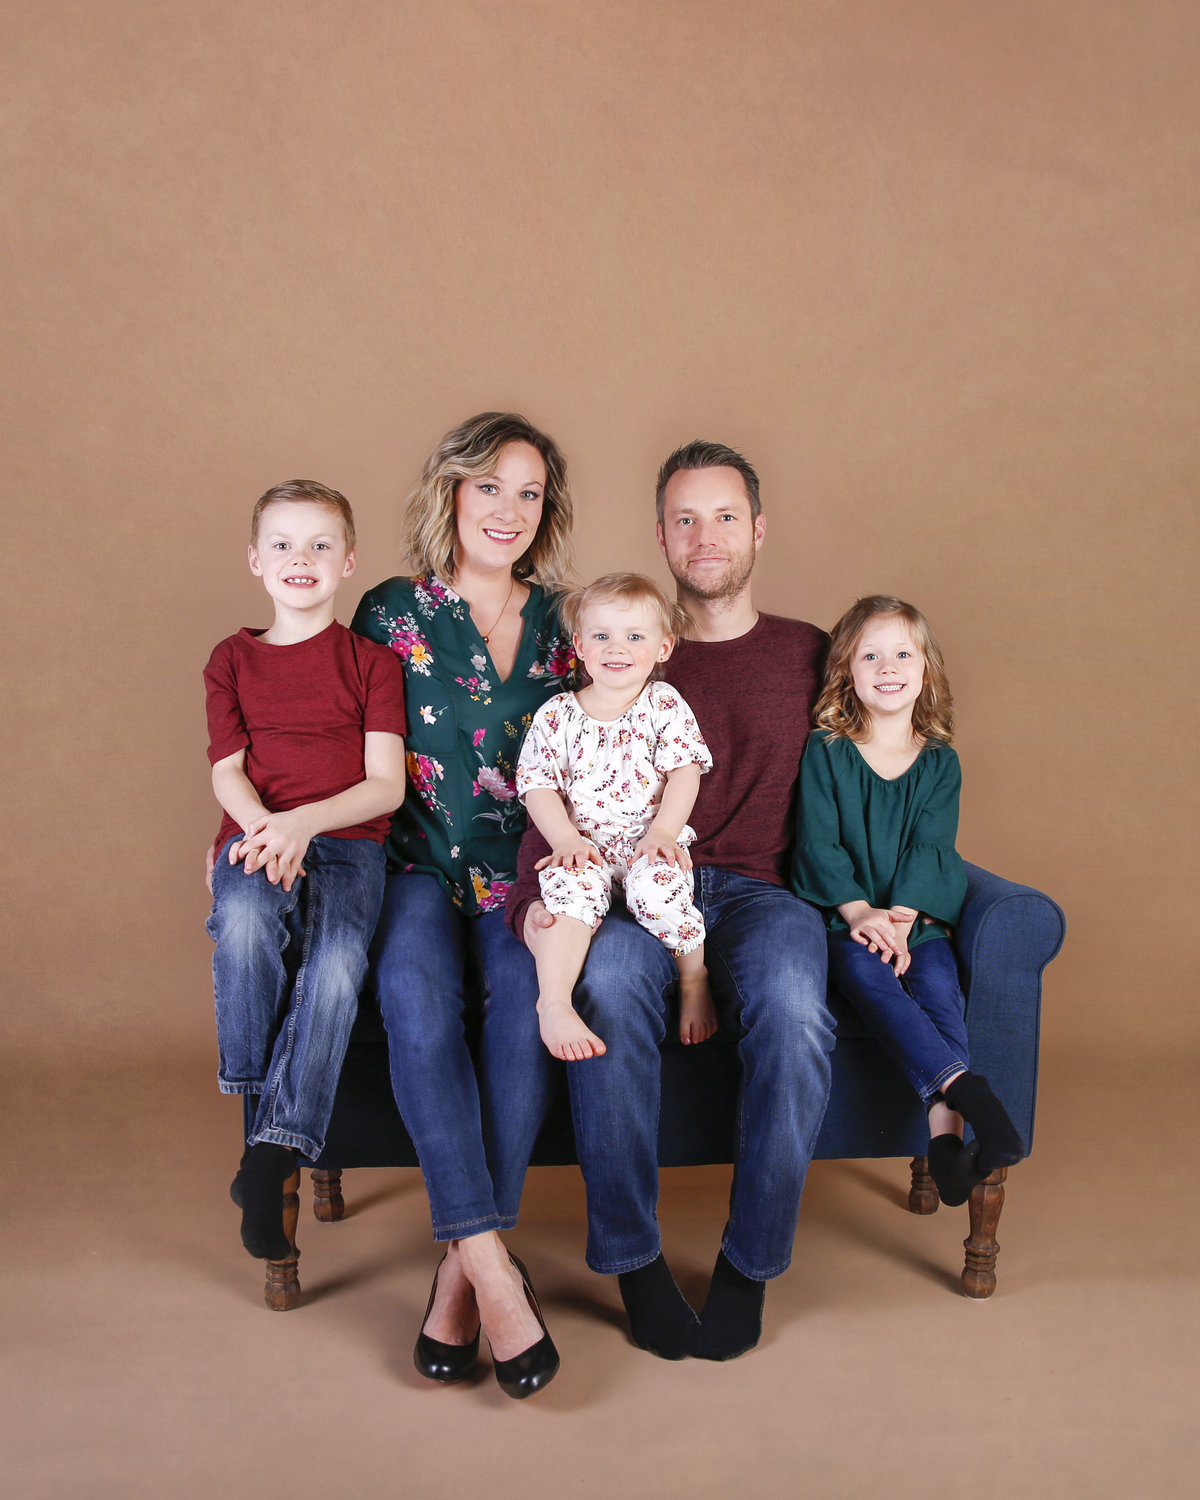 Wendy Goetz and her family of five of Belliam Photos